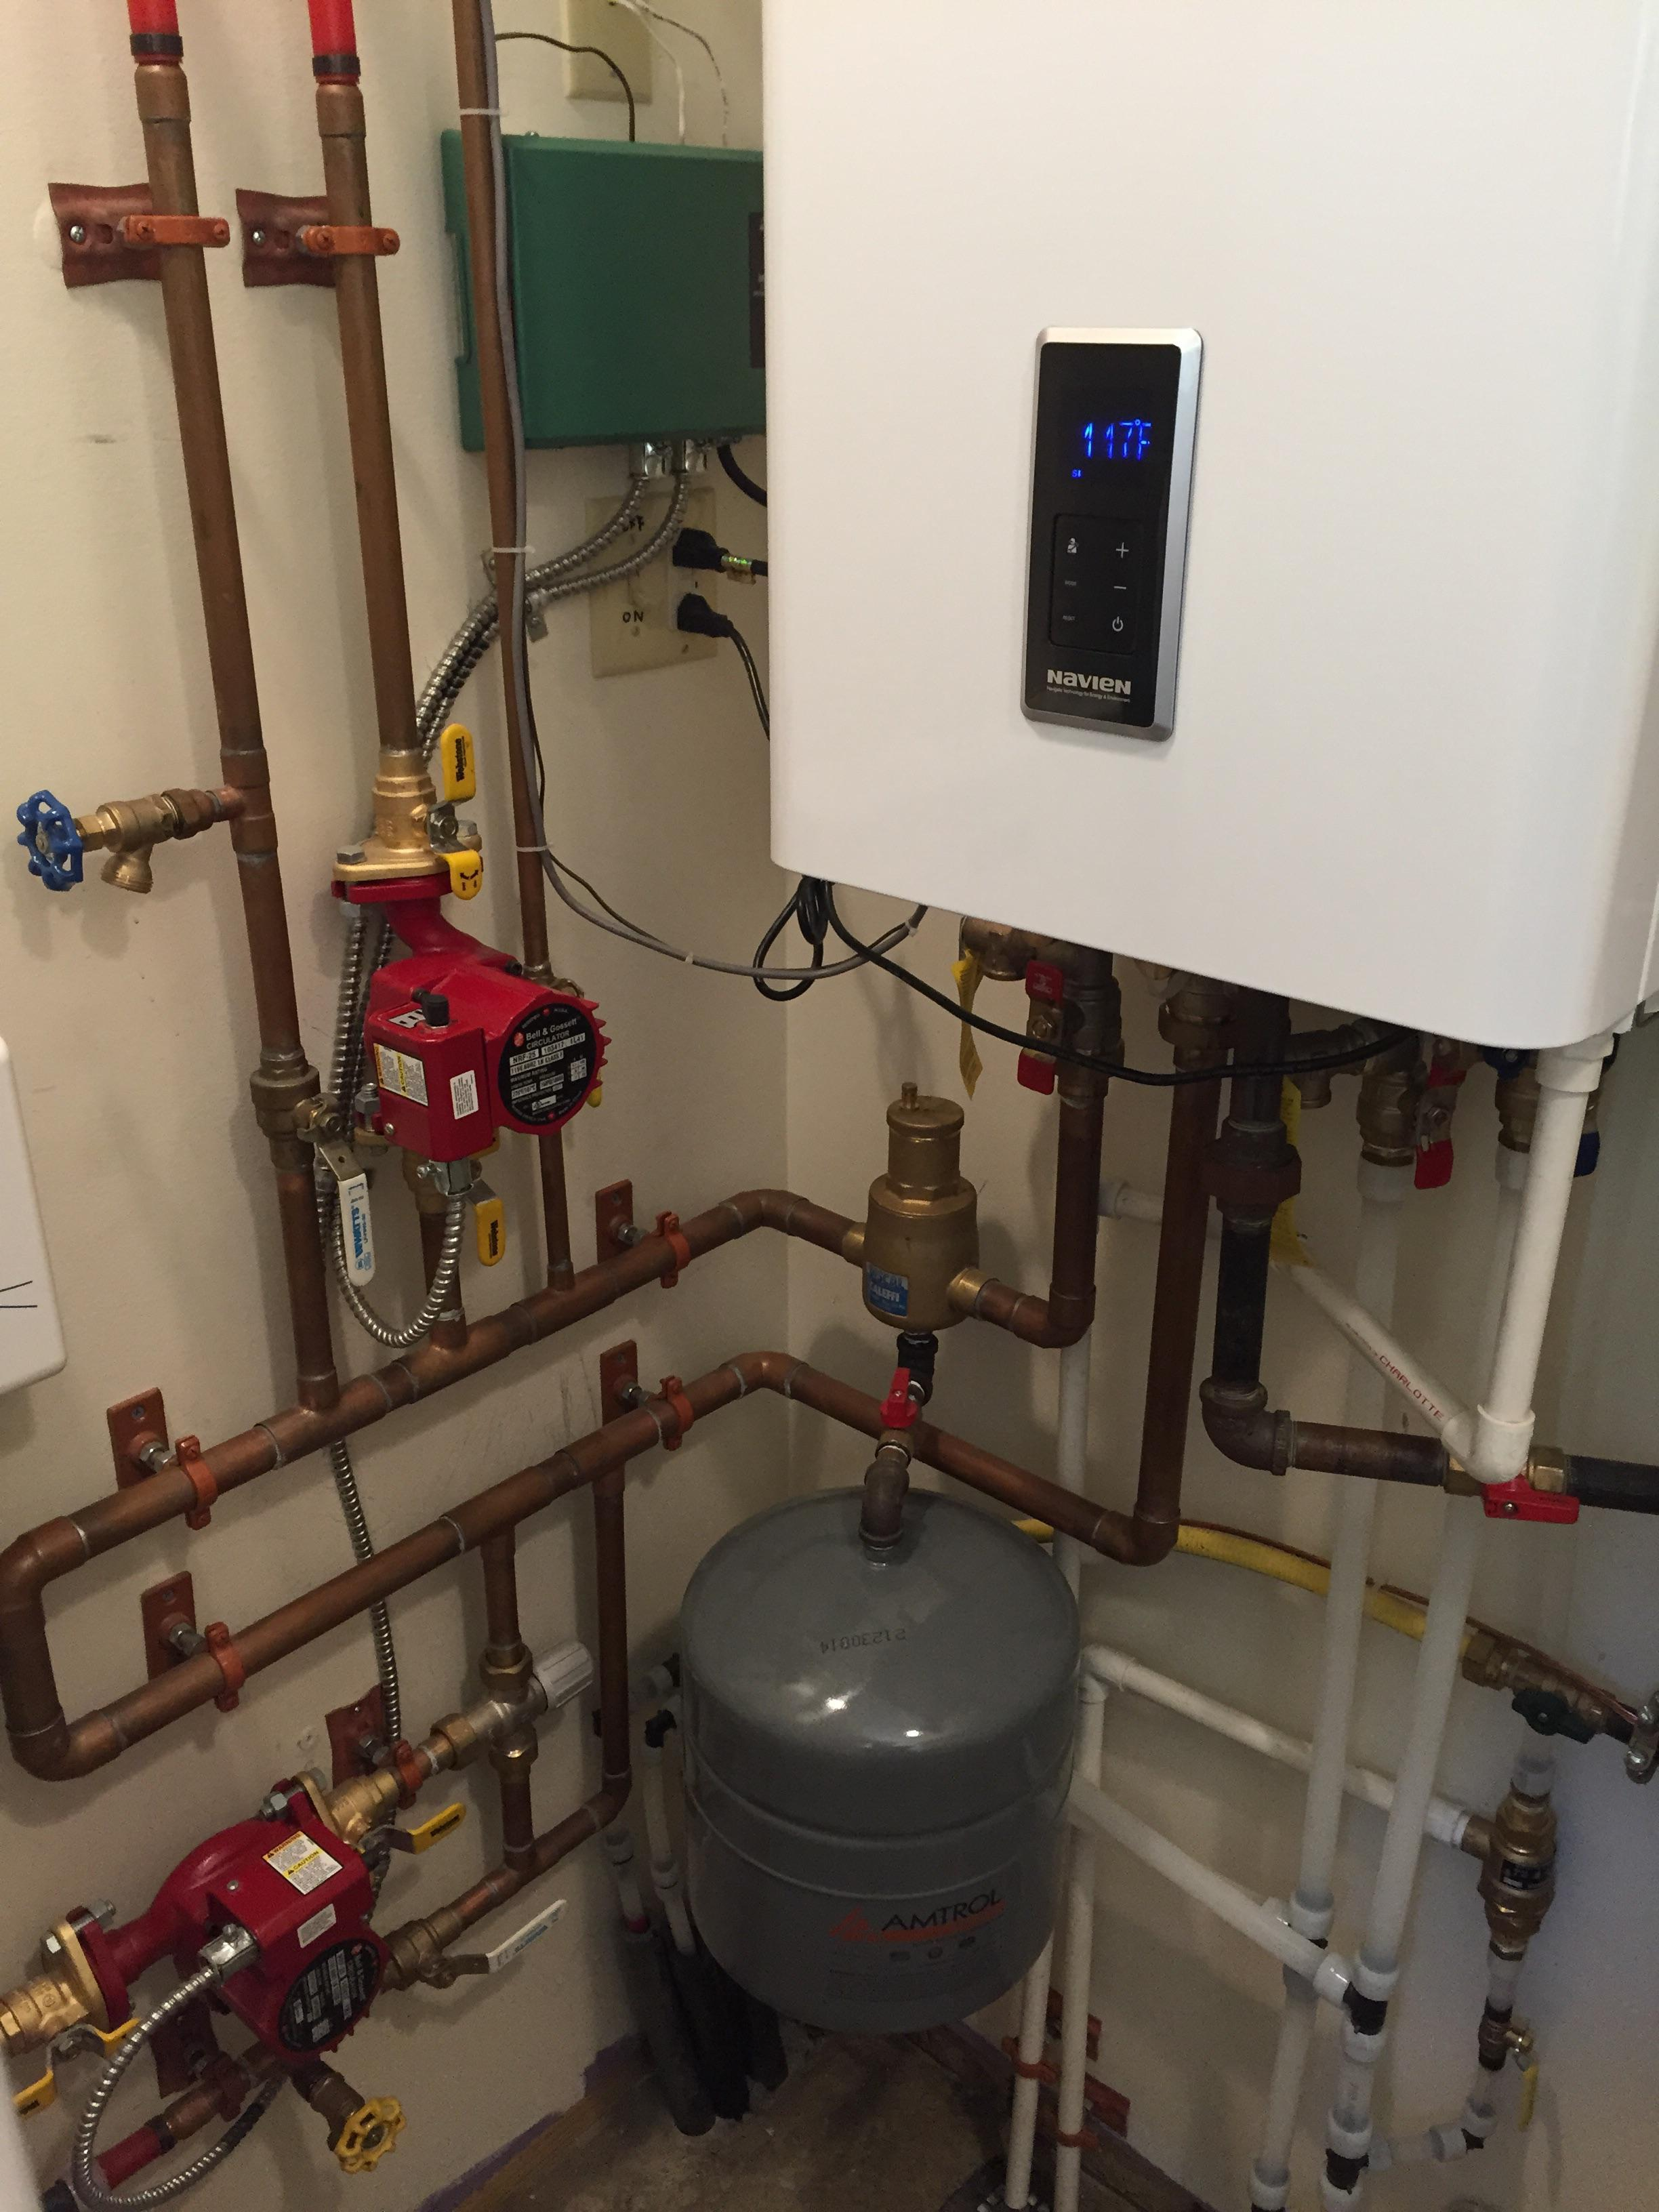 95% Efficient Navien NCB 180 with 1 infloor radiant zone, & 1 hot water baseboard zone.